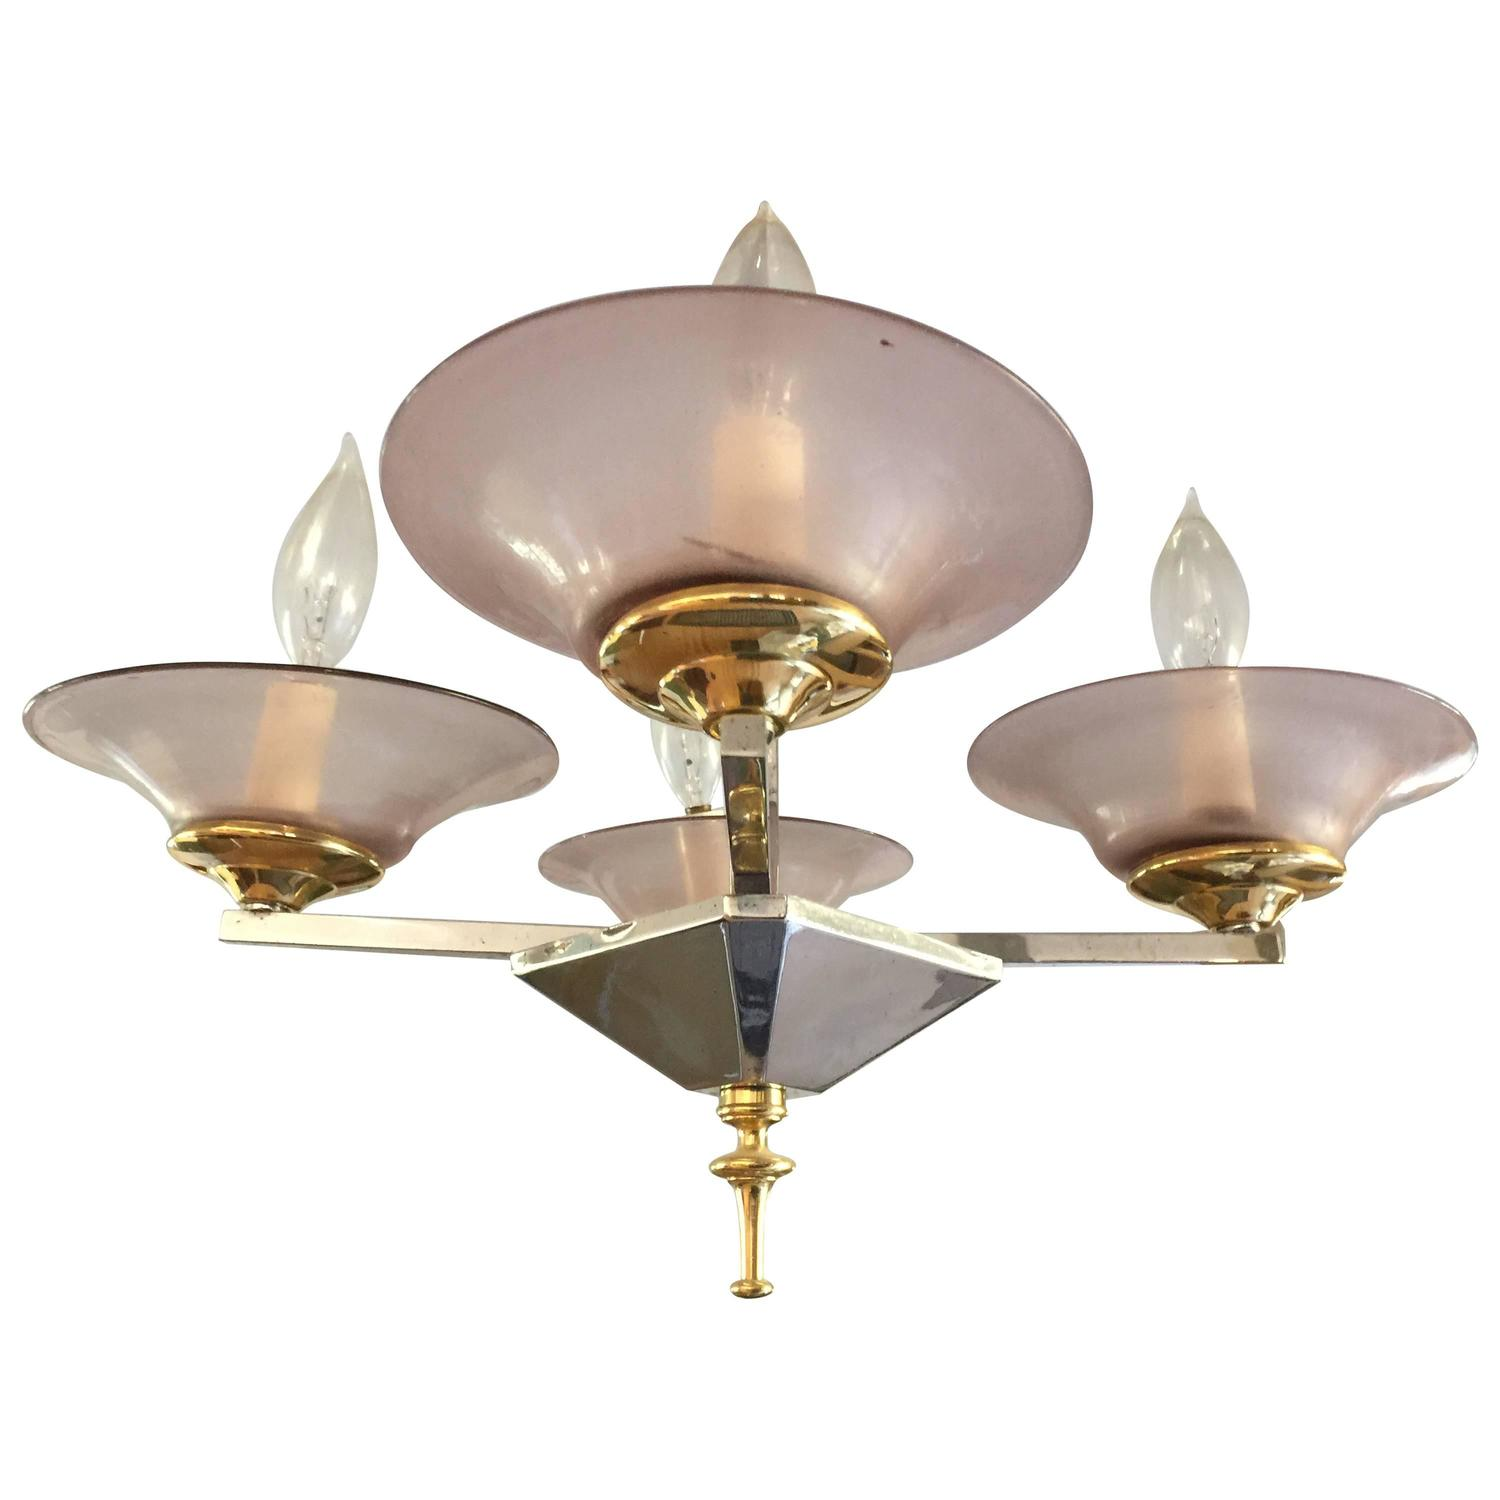 Foyer Chandelier Small : Brass and chrome depression glass foyer small modern